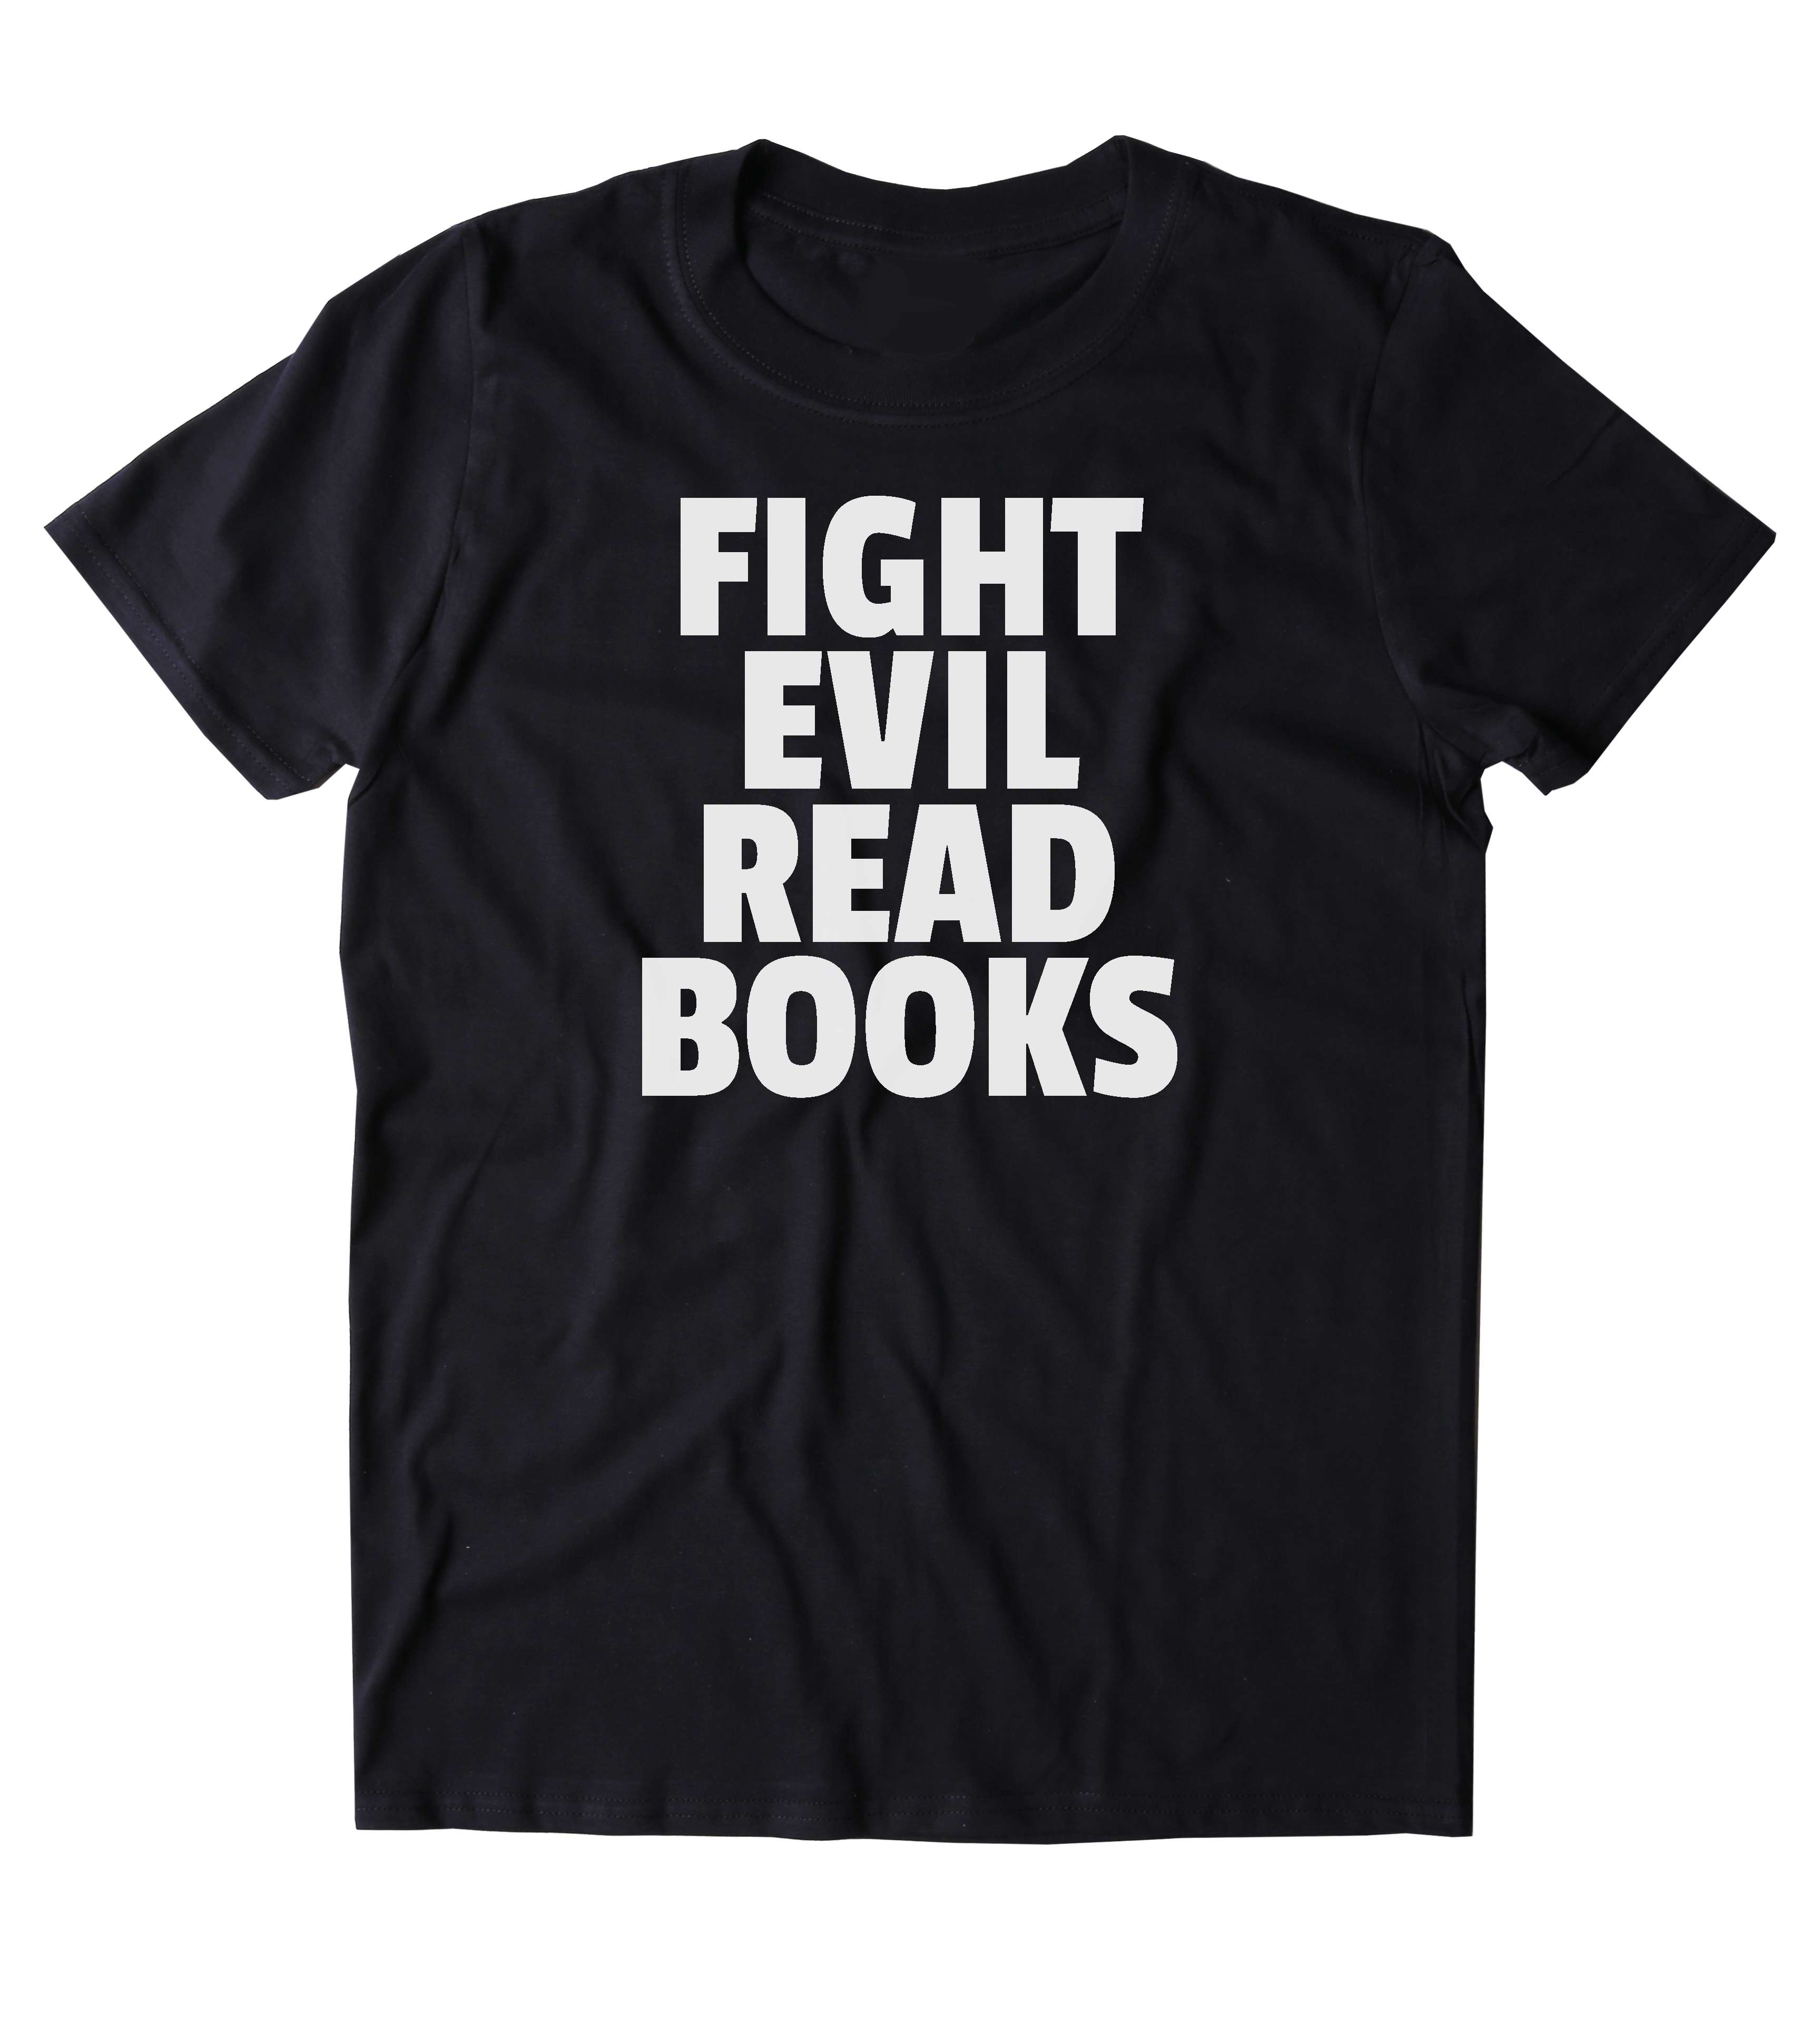 Fight Evil Read Books T-Shirt Funny Bookworm Reader Nerdy Clothing Tumblr  Shirt from Sunray Clothing